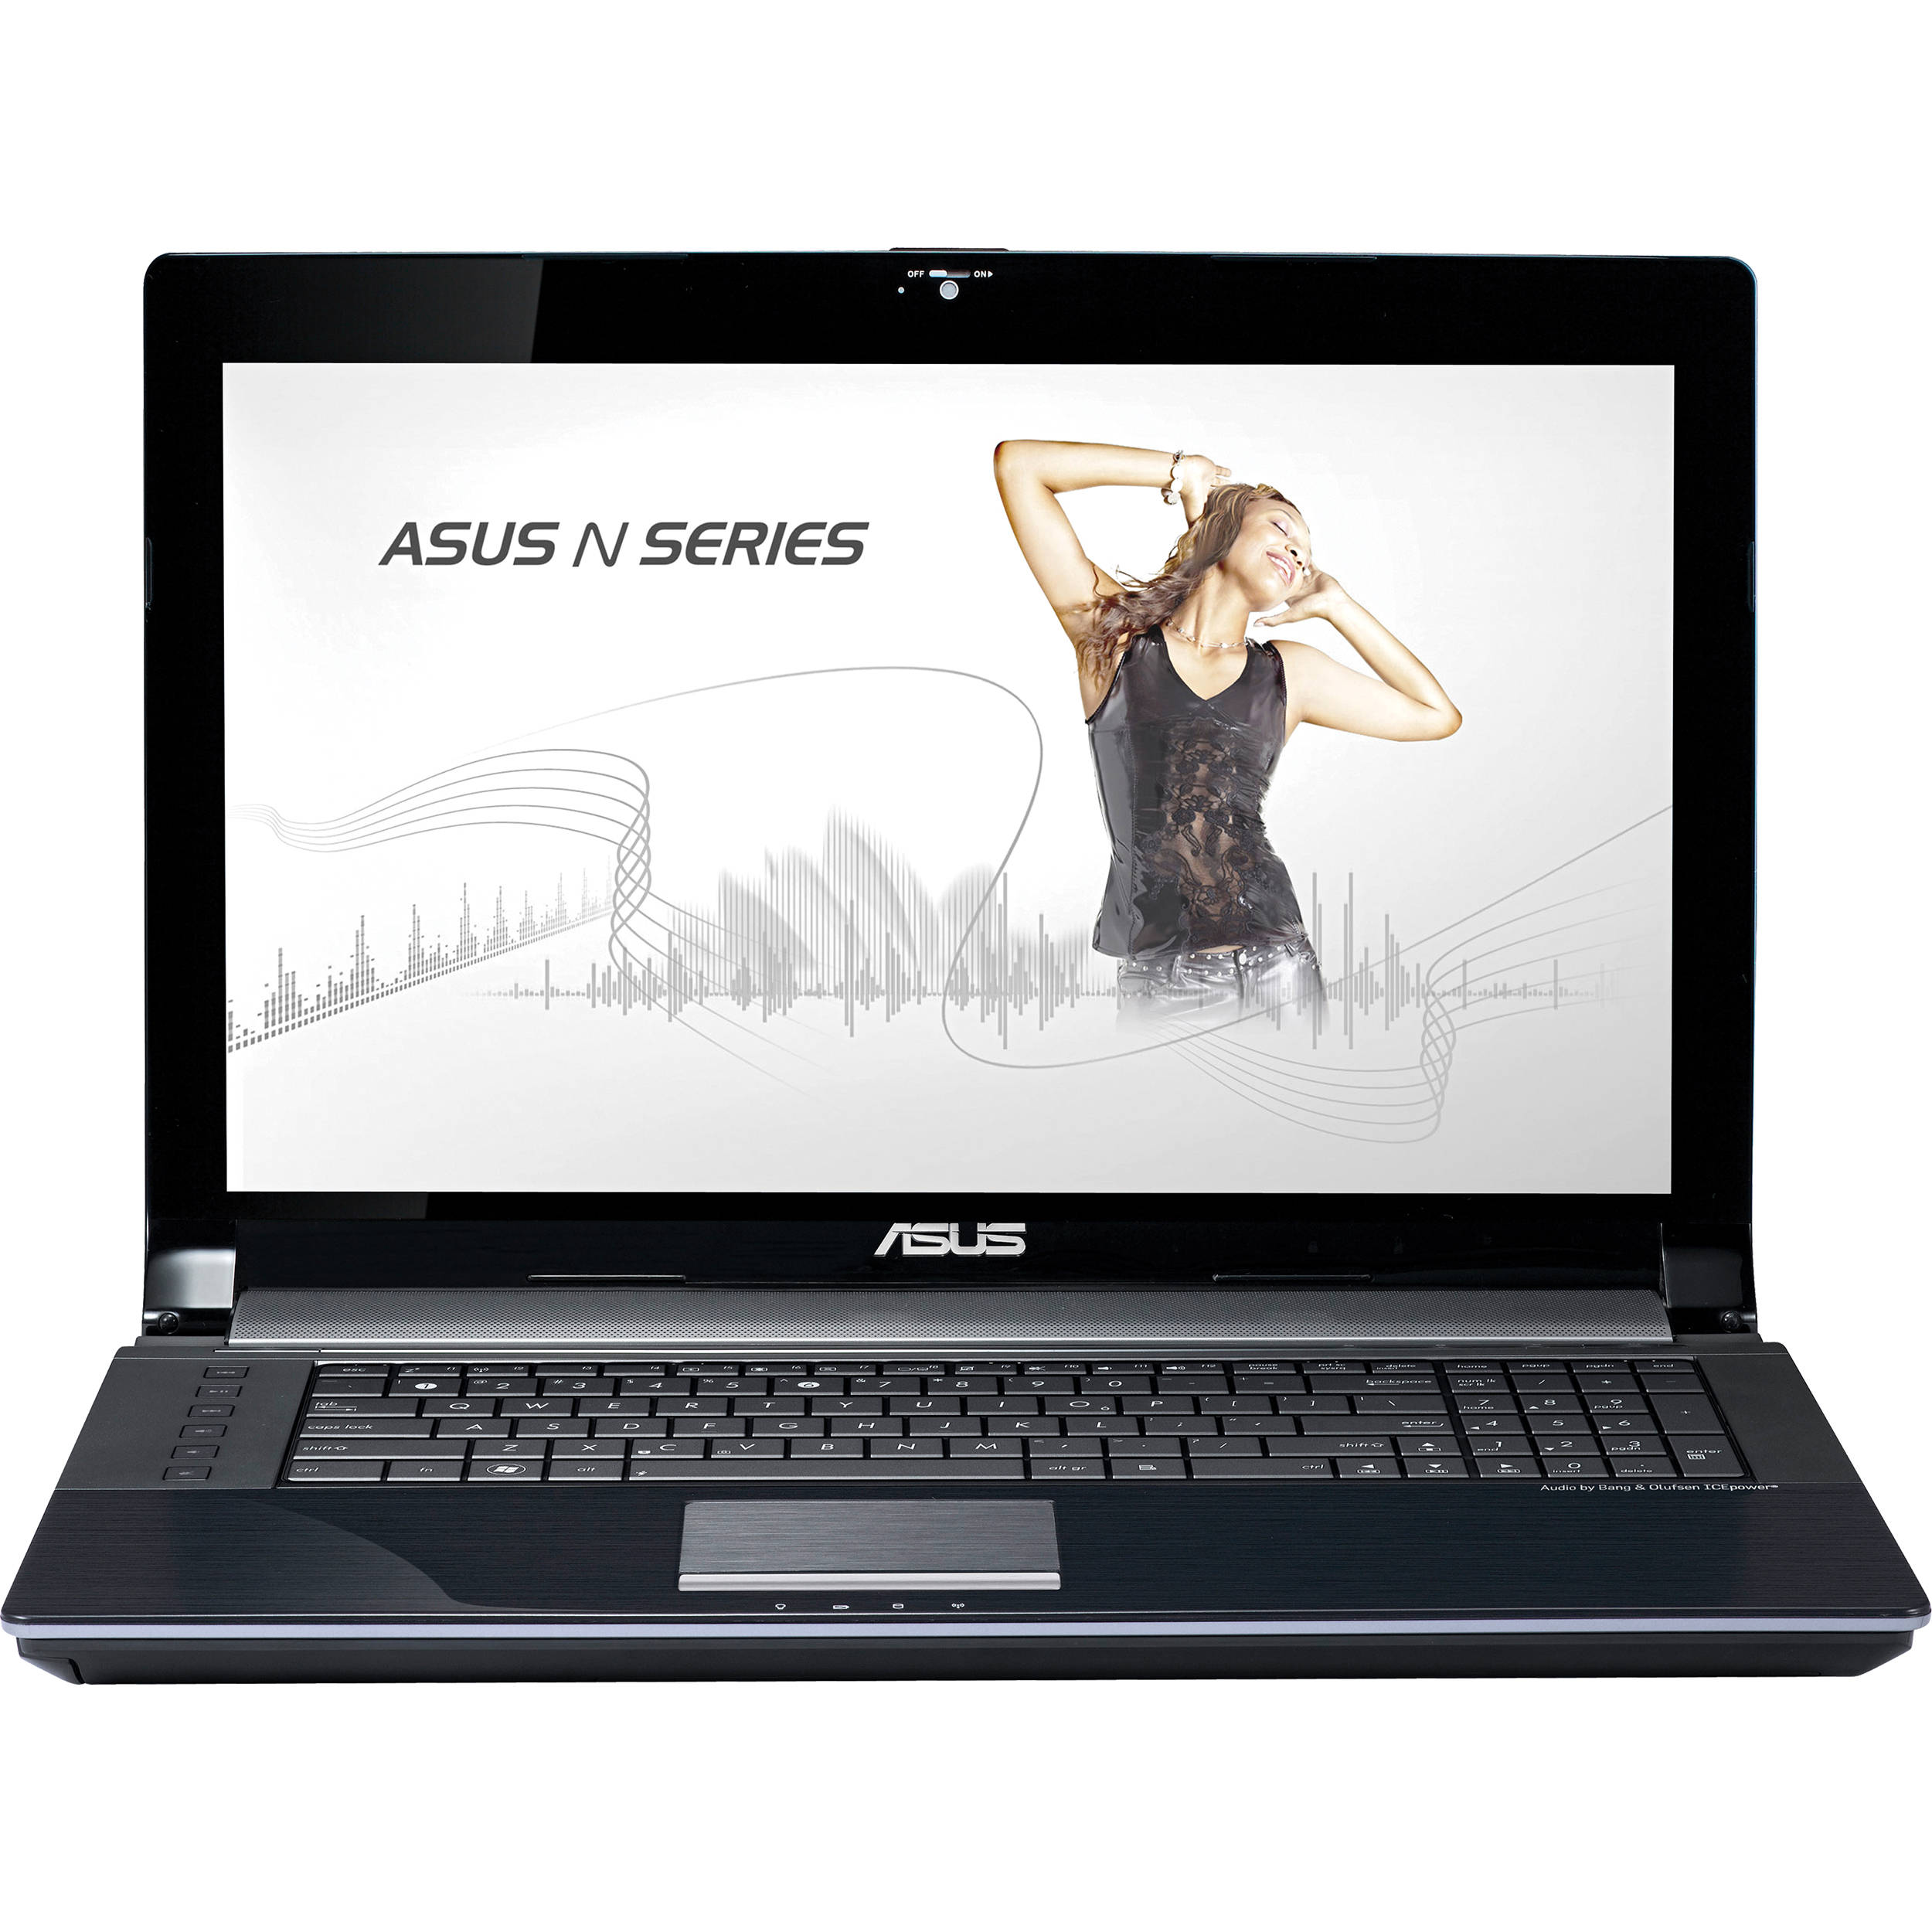 ASUS N73SV VIRTUAL CAMERA WINDOWS 8.1 DRIVER DOWNLOAD